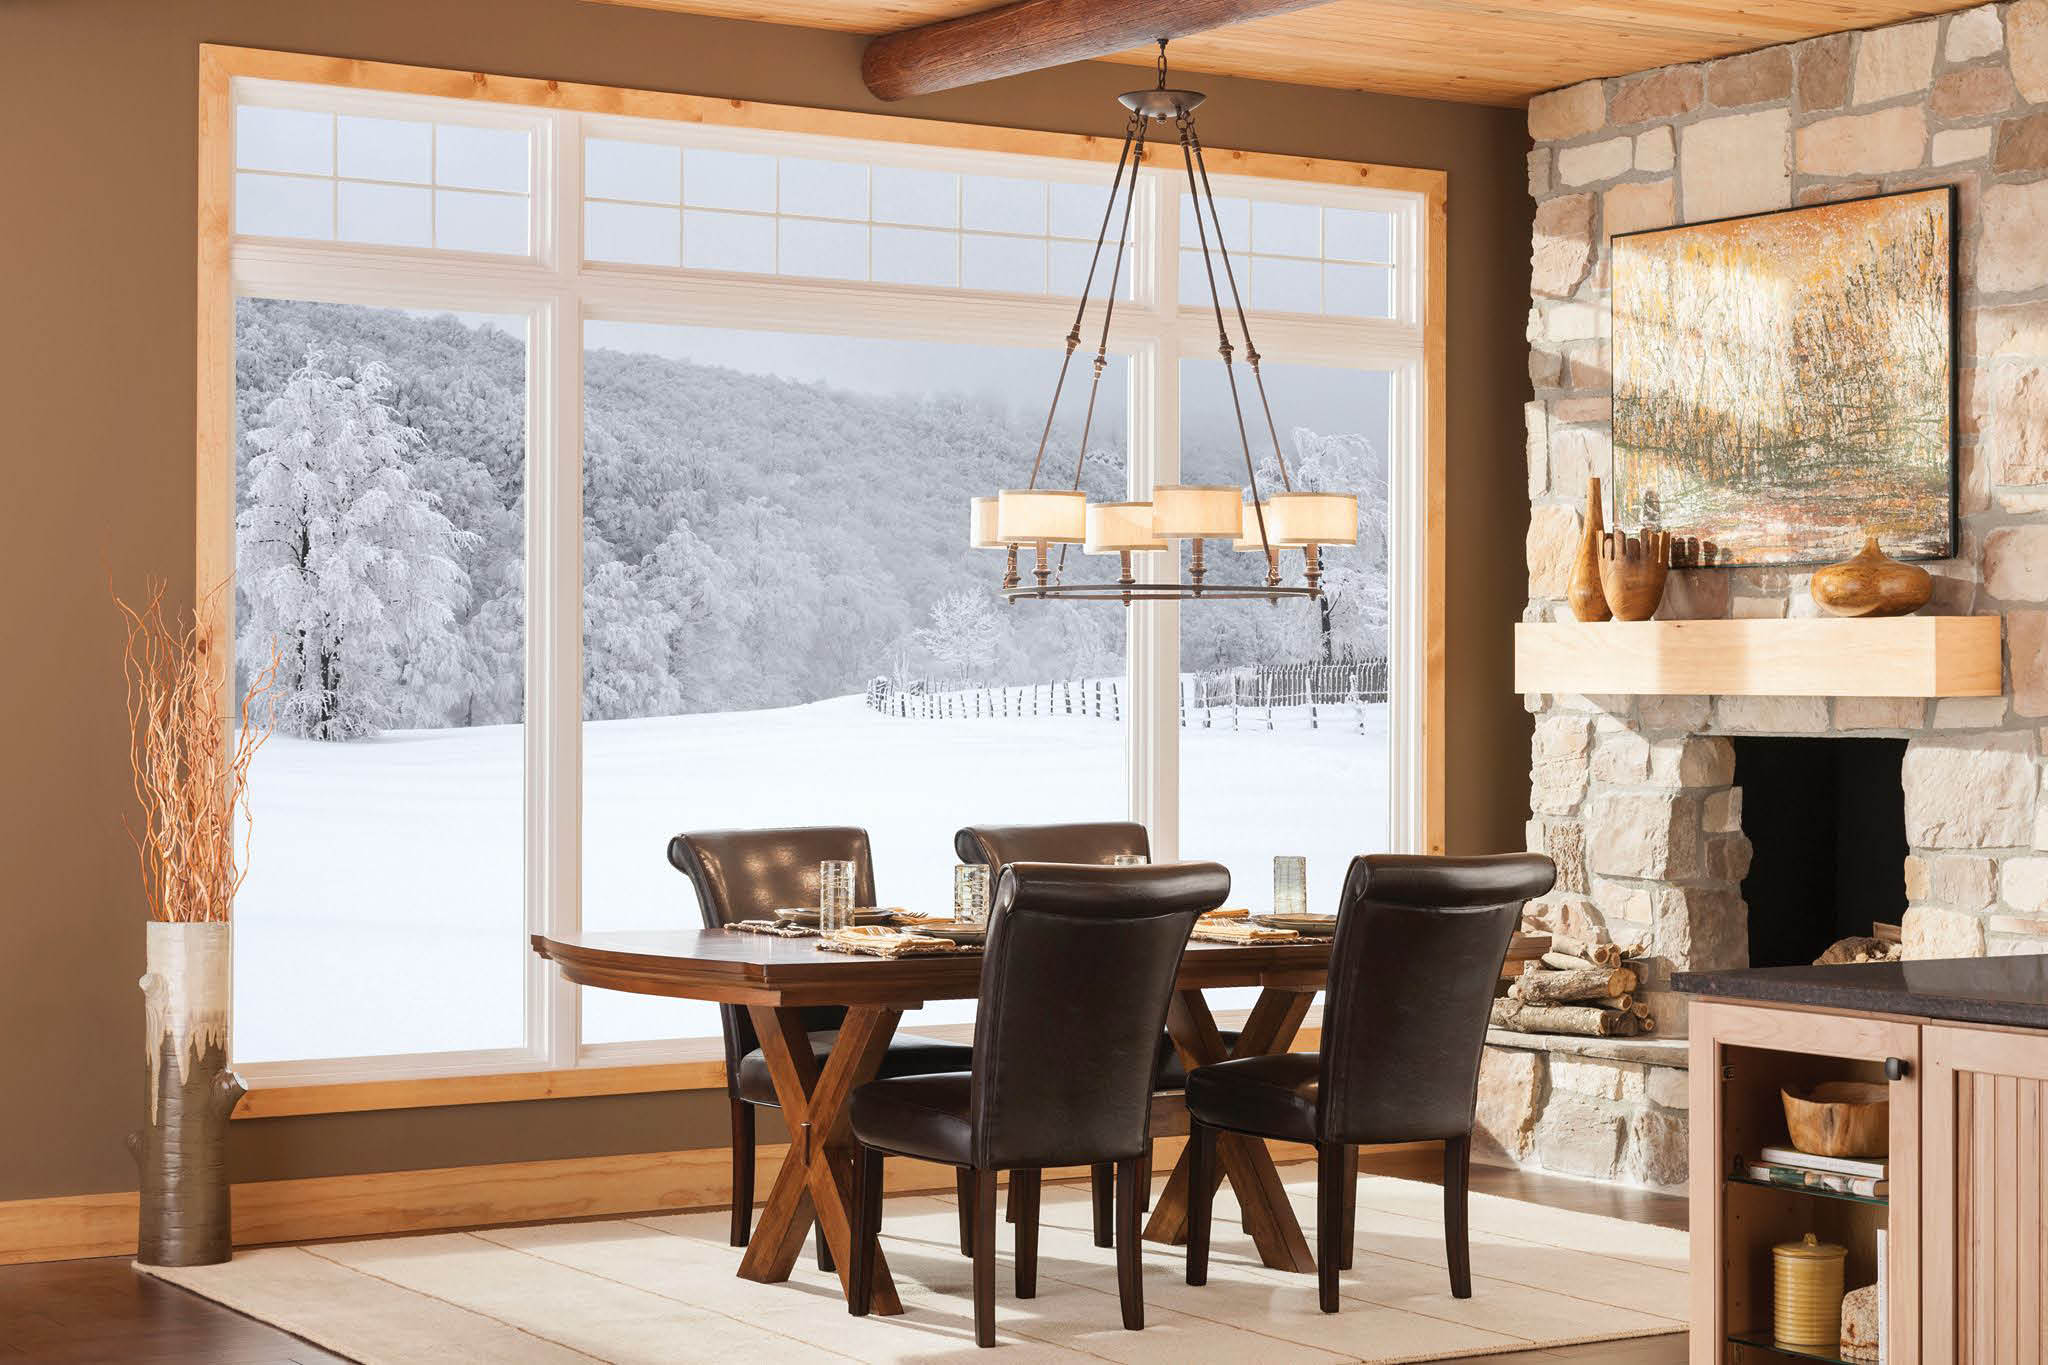 Add more light to home with large bay window in living room or dining room